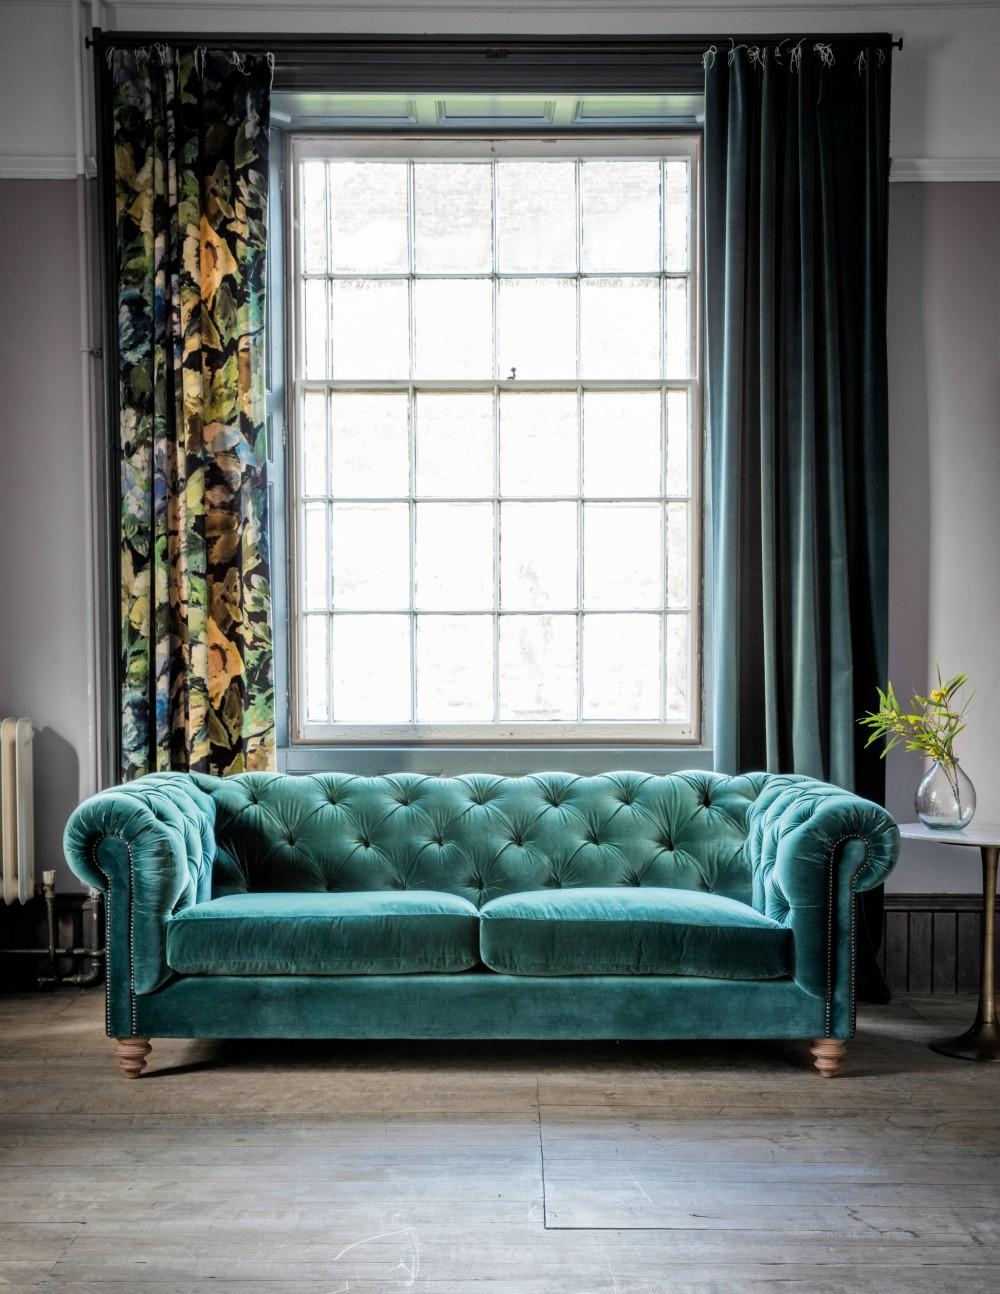 Blue Velvet Tufted Sofa | Sofa Gallery | Kengire Pertaining To Blue Velvet Tufted Sofas (Image 5 of 20)